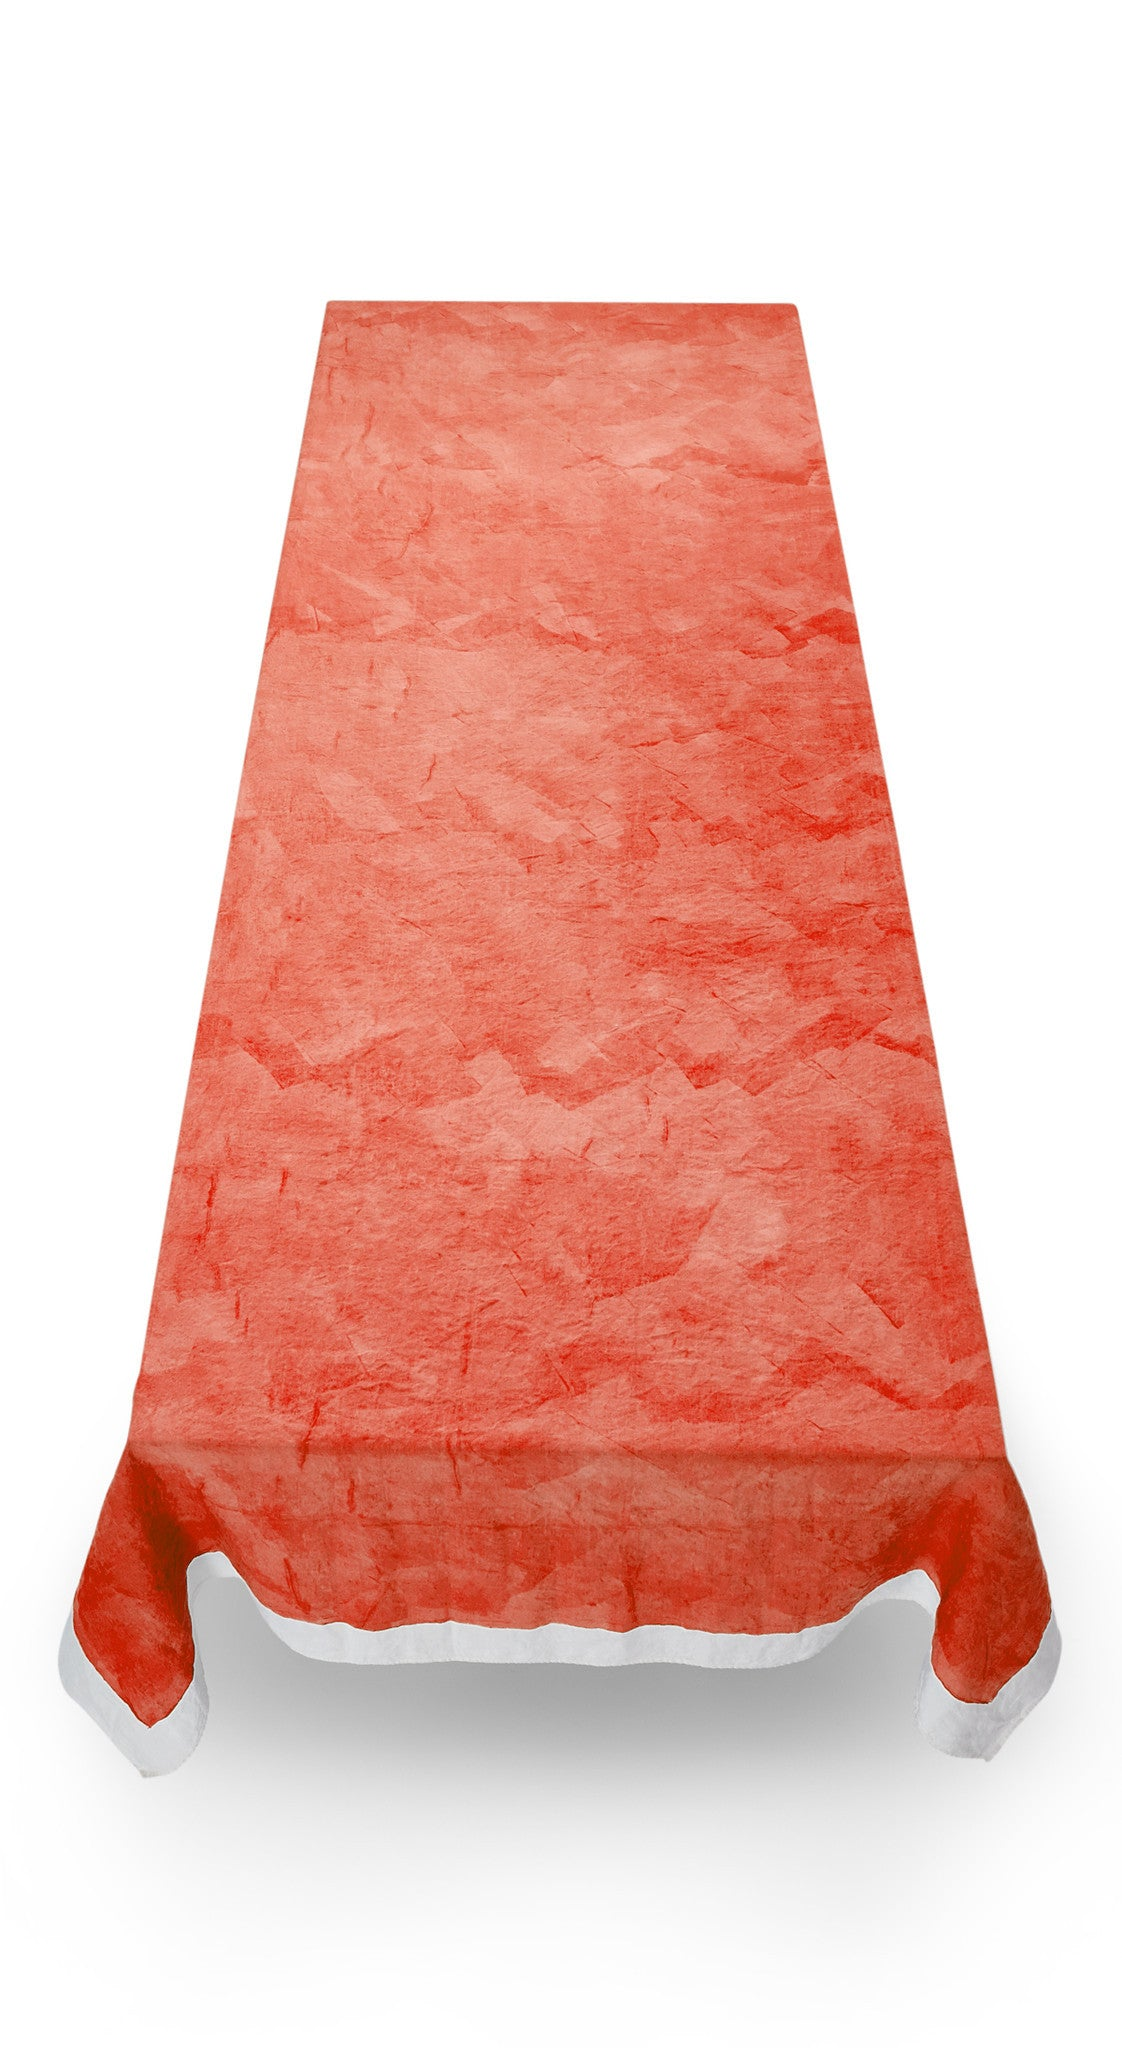 Full Field Linen Tablecloth in Coral Orange